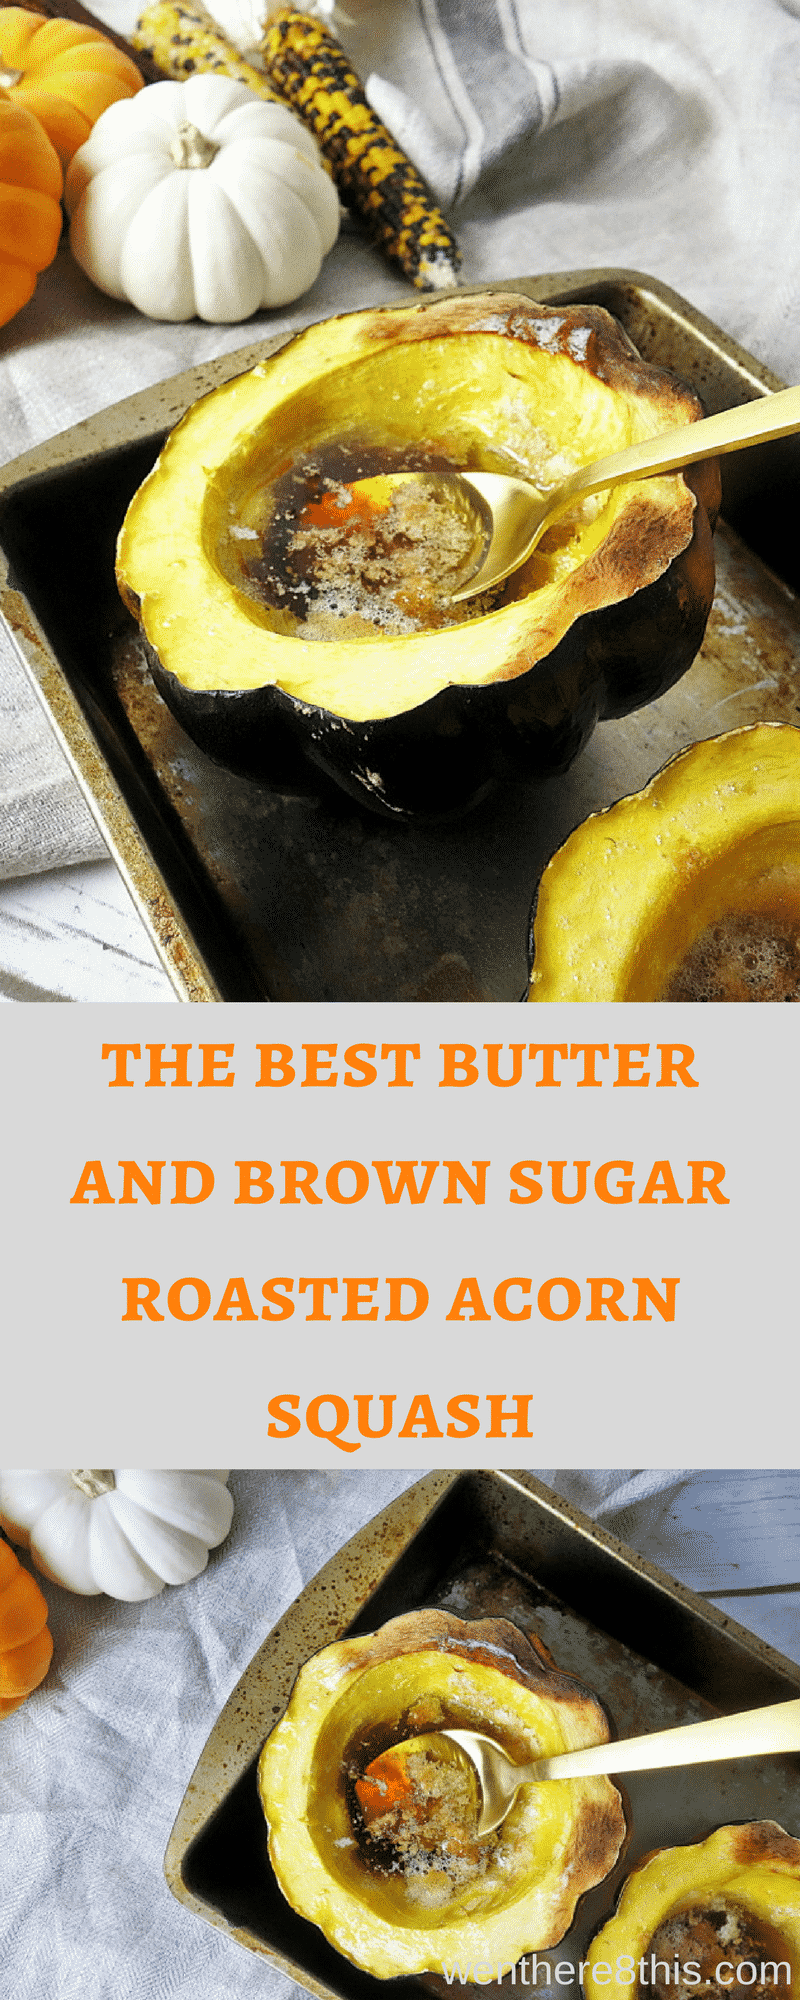 This easy 3 ingredient butter and brown sugar roasted acorn squash is a great winter treat; perfect for those holiday dinners!roasted acorn squash recipe | roasted squash easy | butter roasted squash | winter squash recipes | acorn squash recipe easy | easy holiday recipe | sweet roasted squash | sugar roasted acorn squash easy | classic baked acorn squash | fall recipes